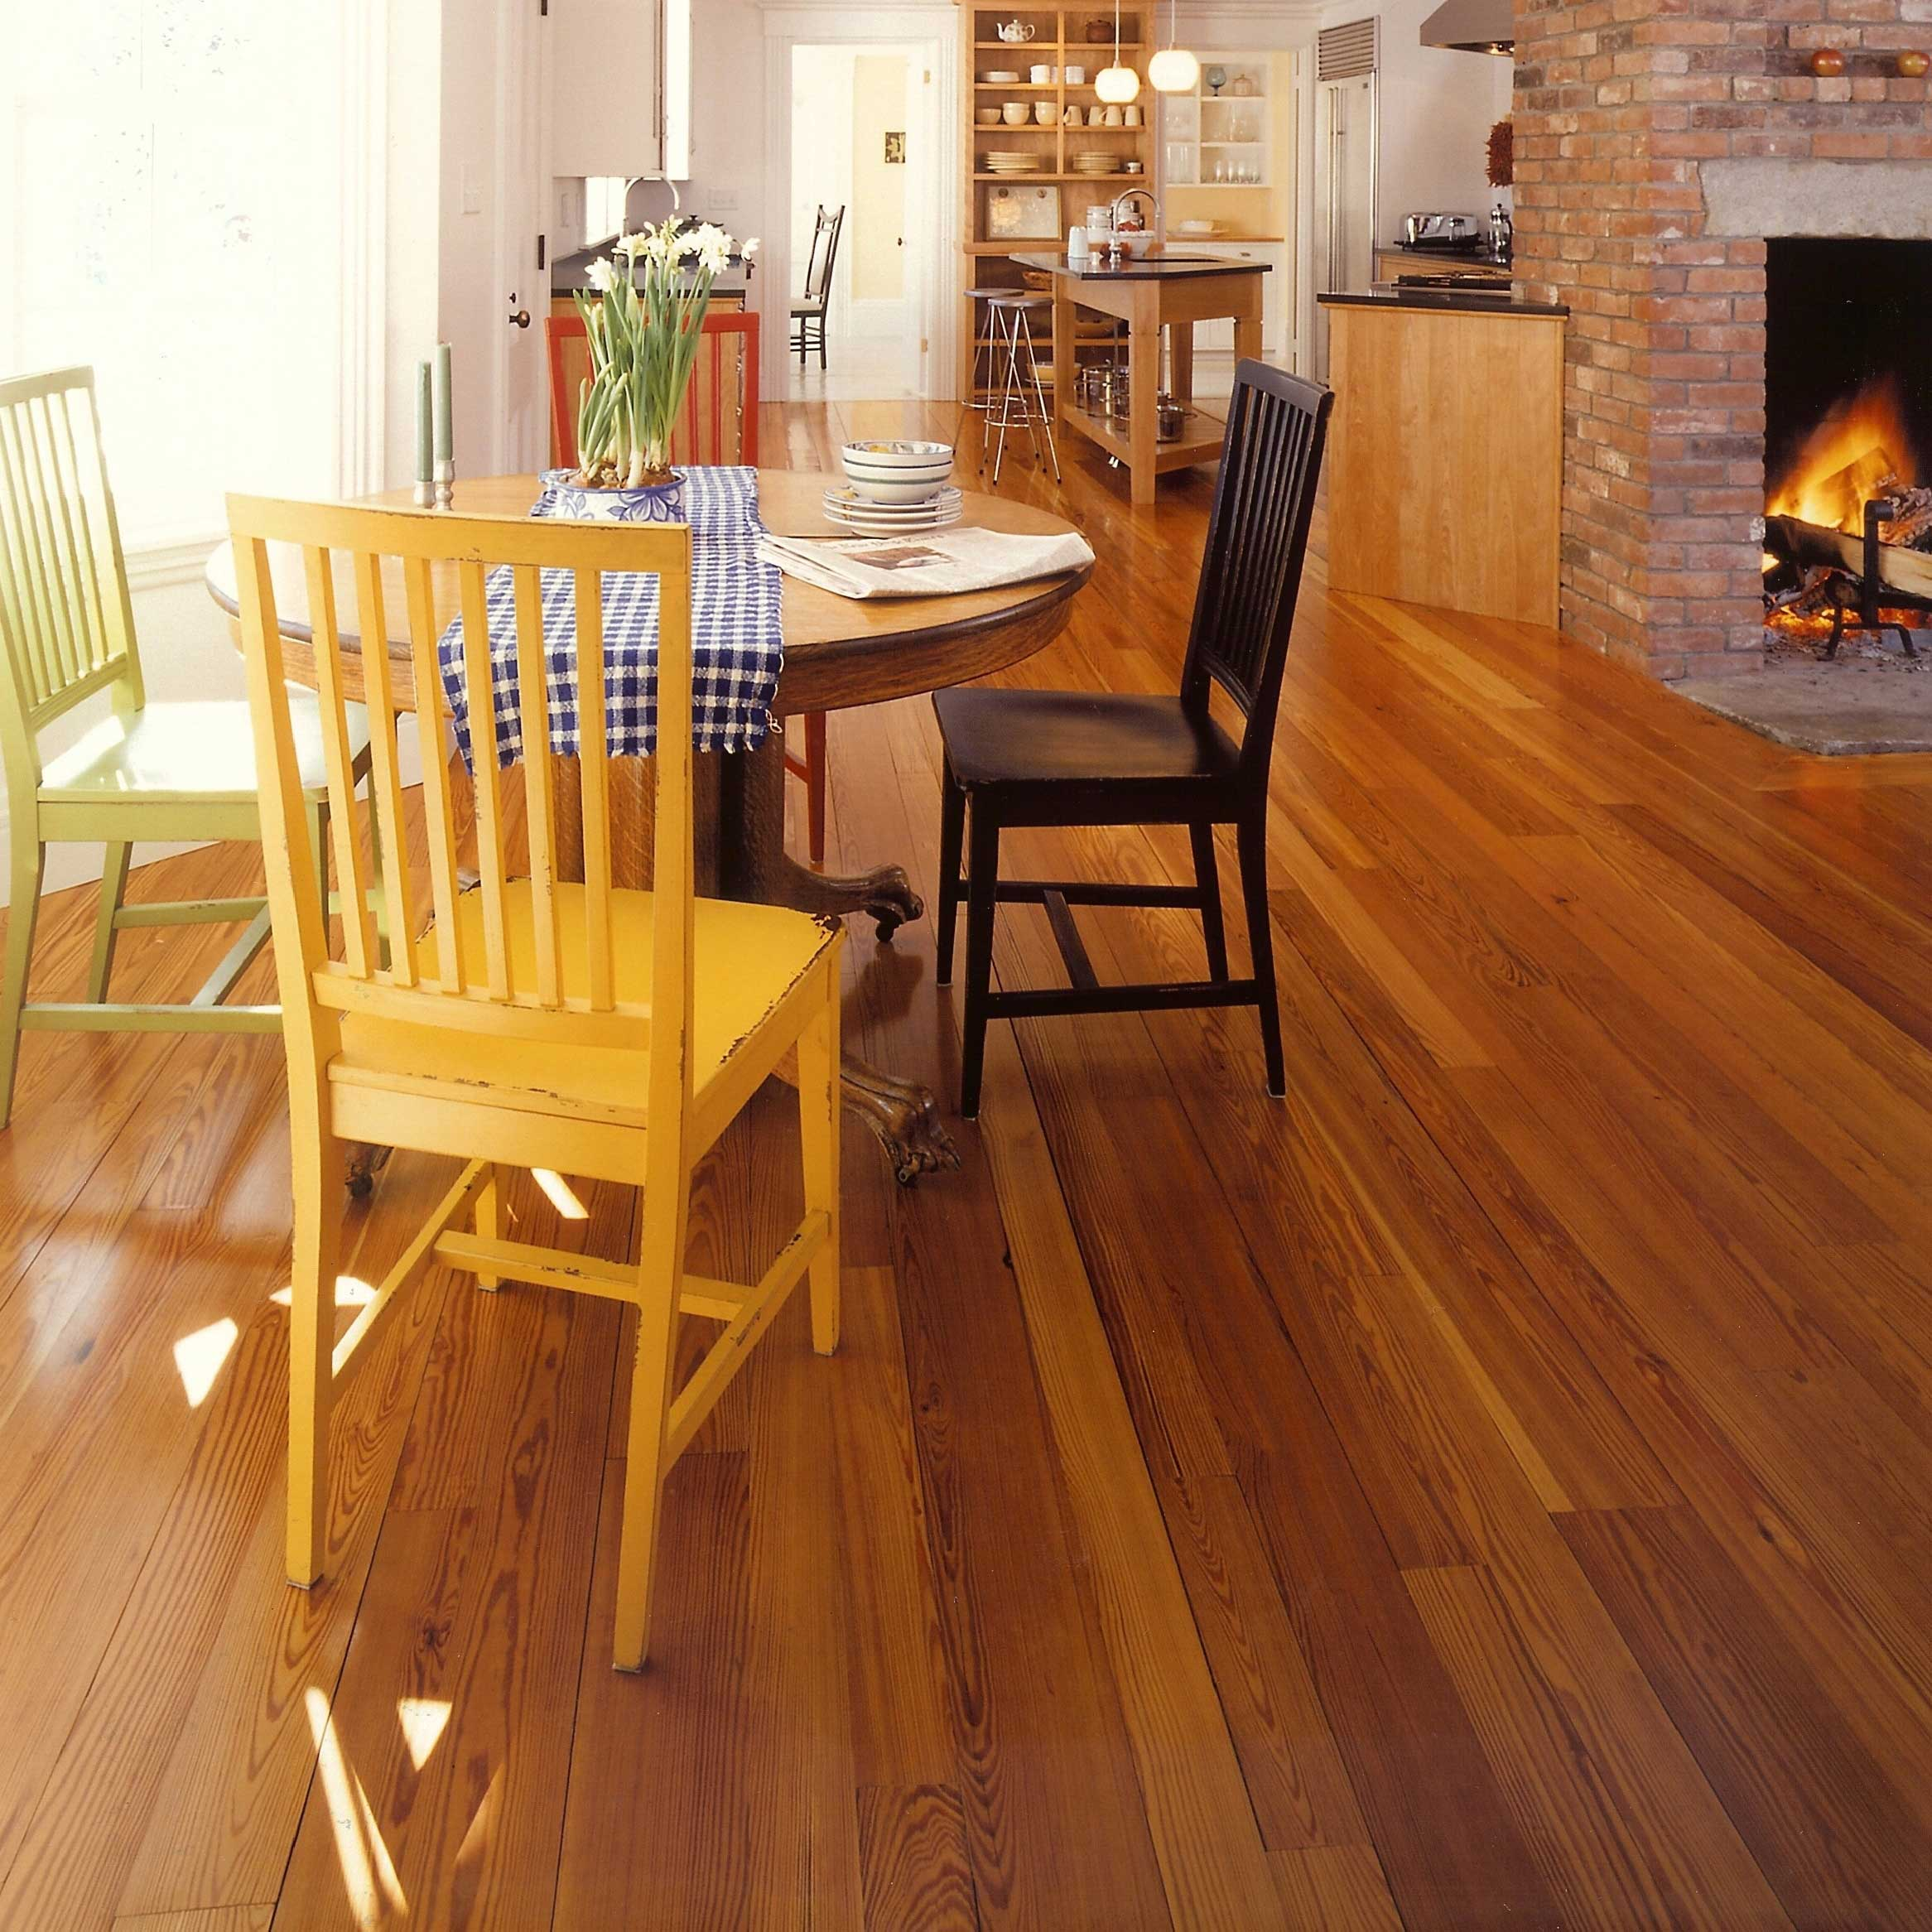 Longleaf lumber reclaimed heart pine flooring Salvaged pine flooring